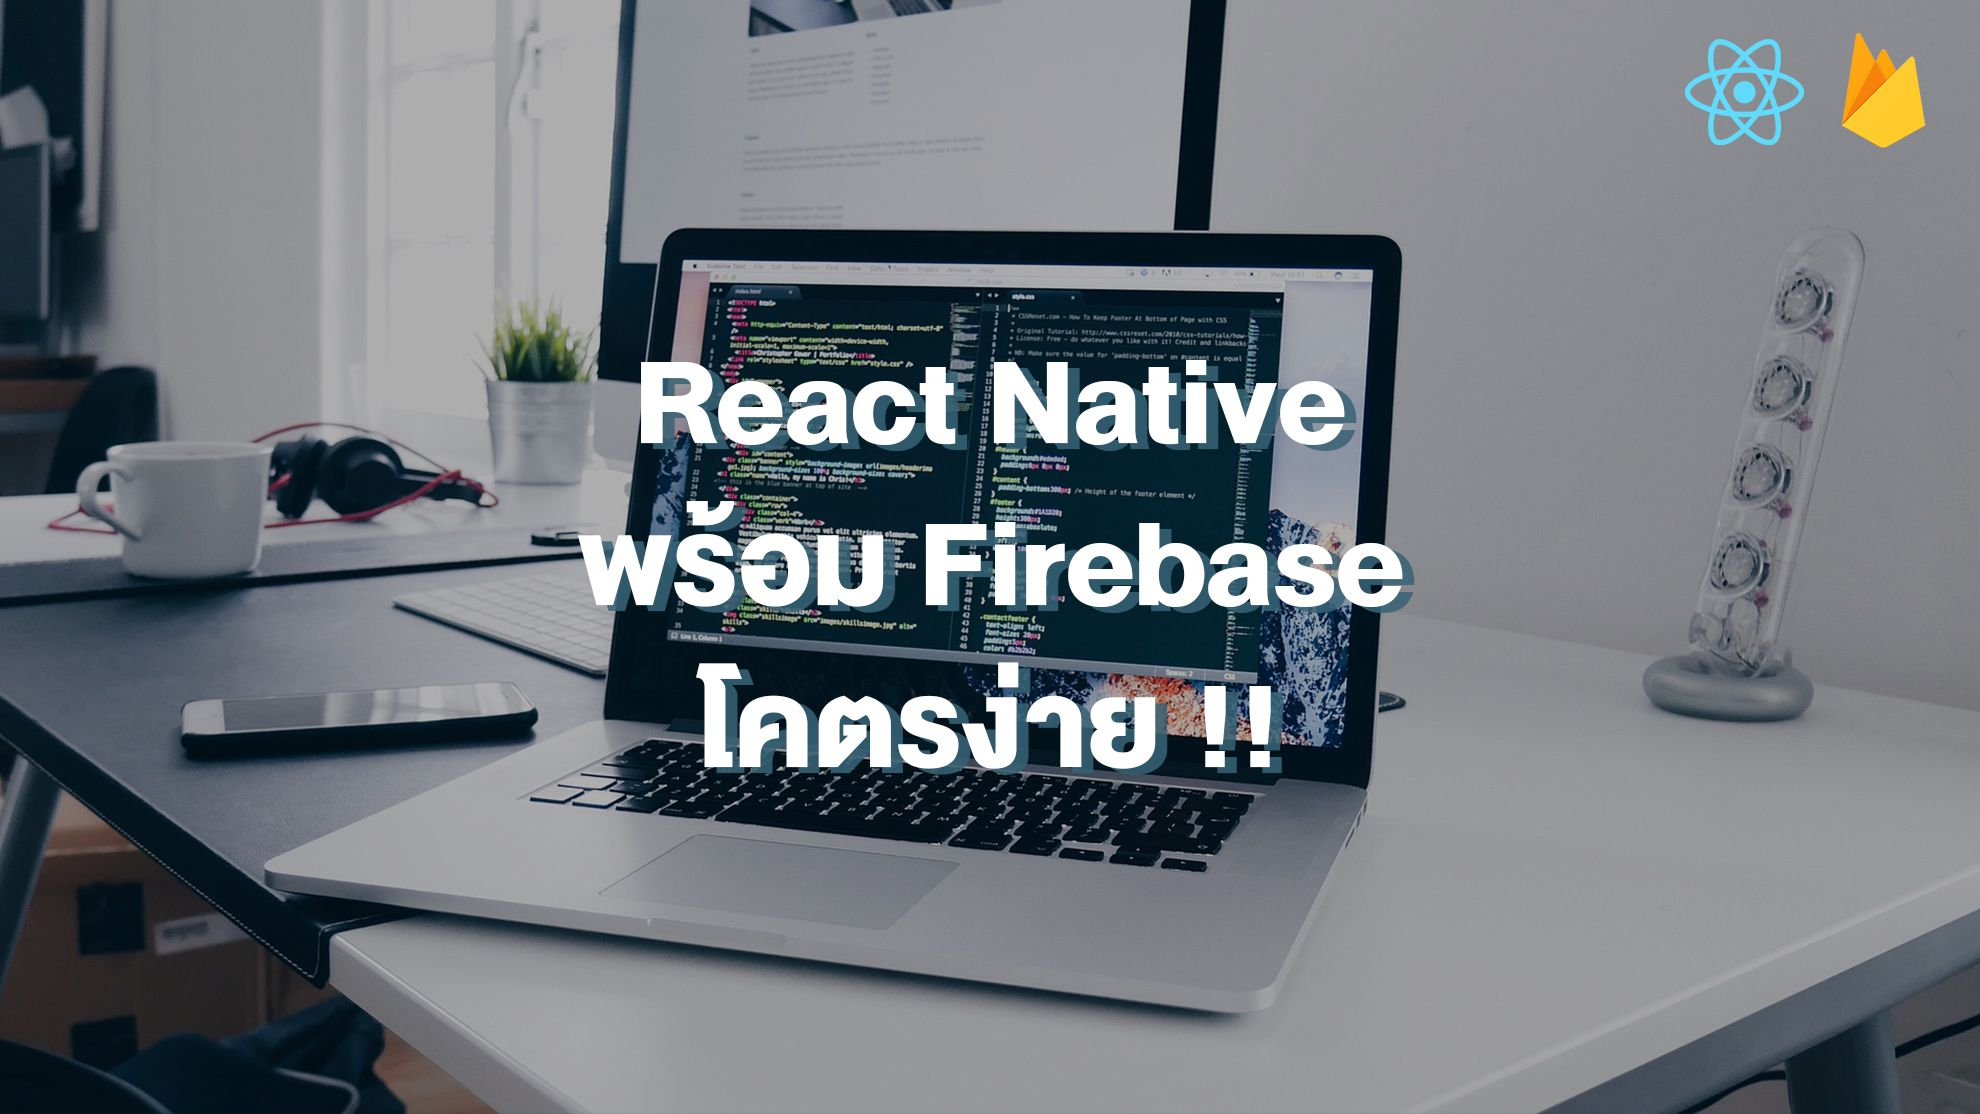 reat-native-firebase